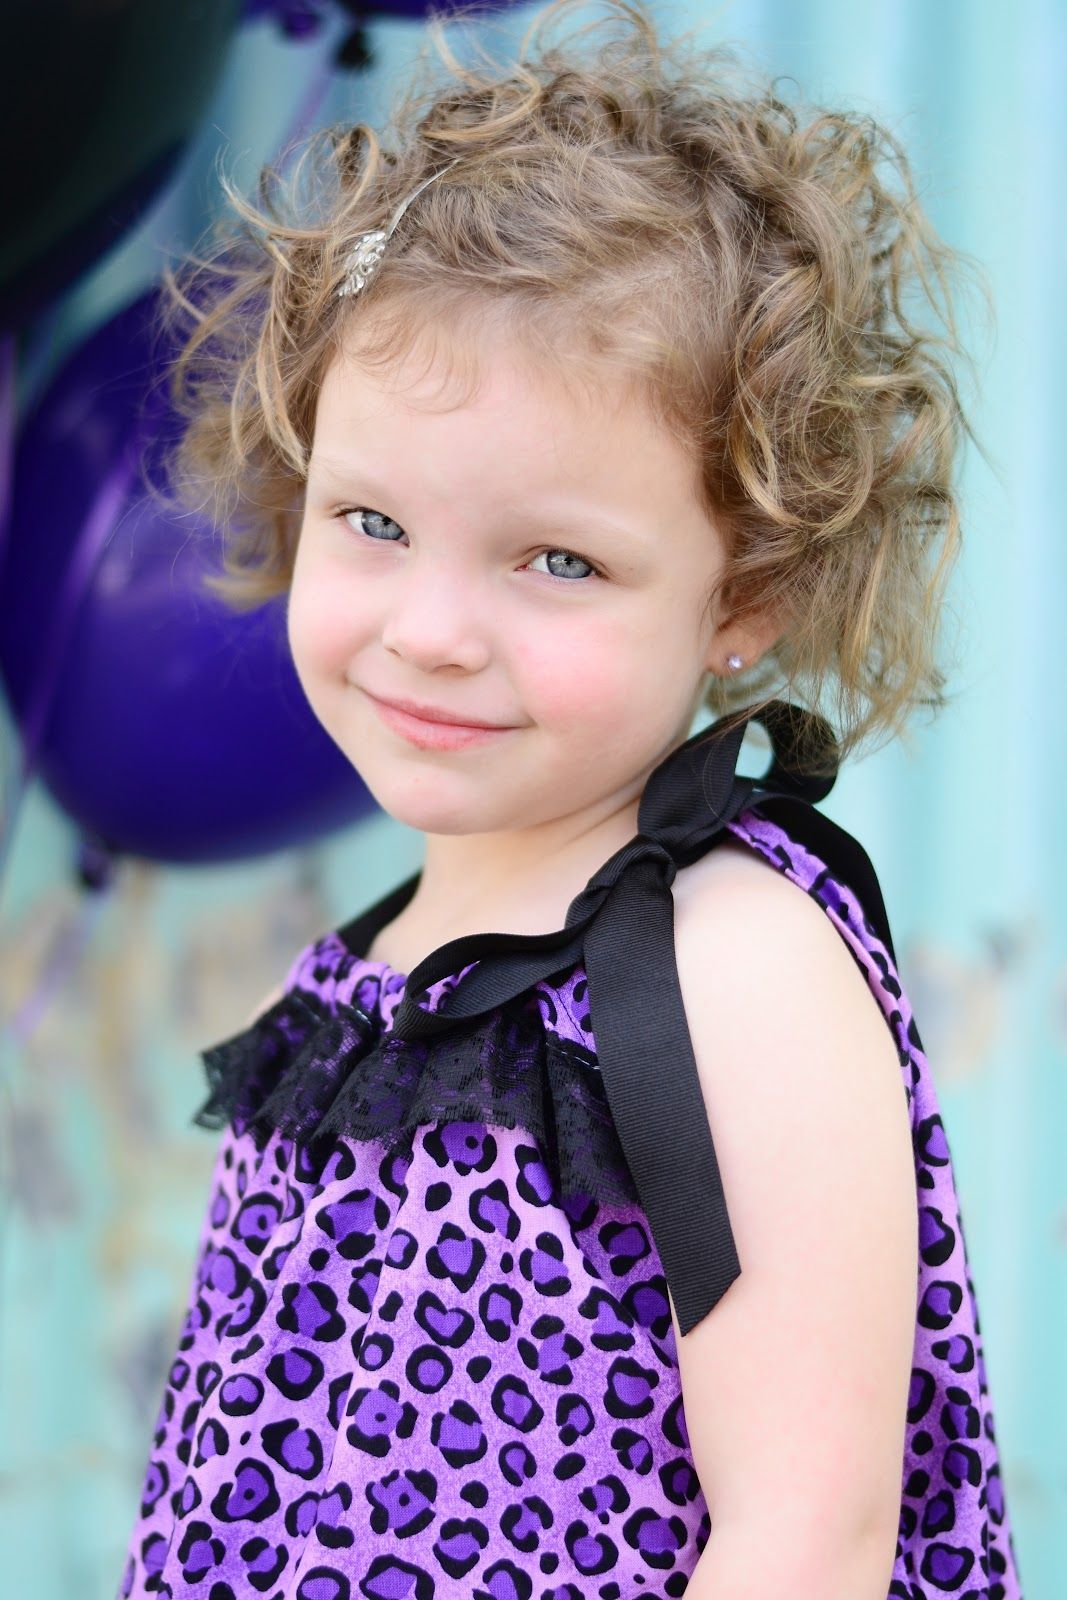 Hairstyles For 2 Year Olds With Short Hair | Baby girl ...